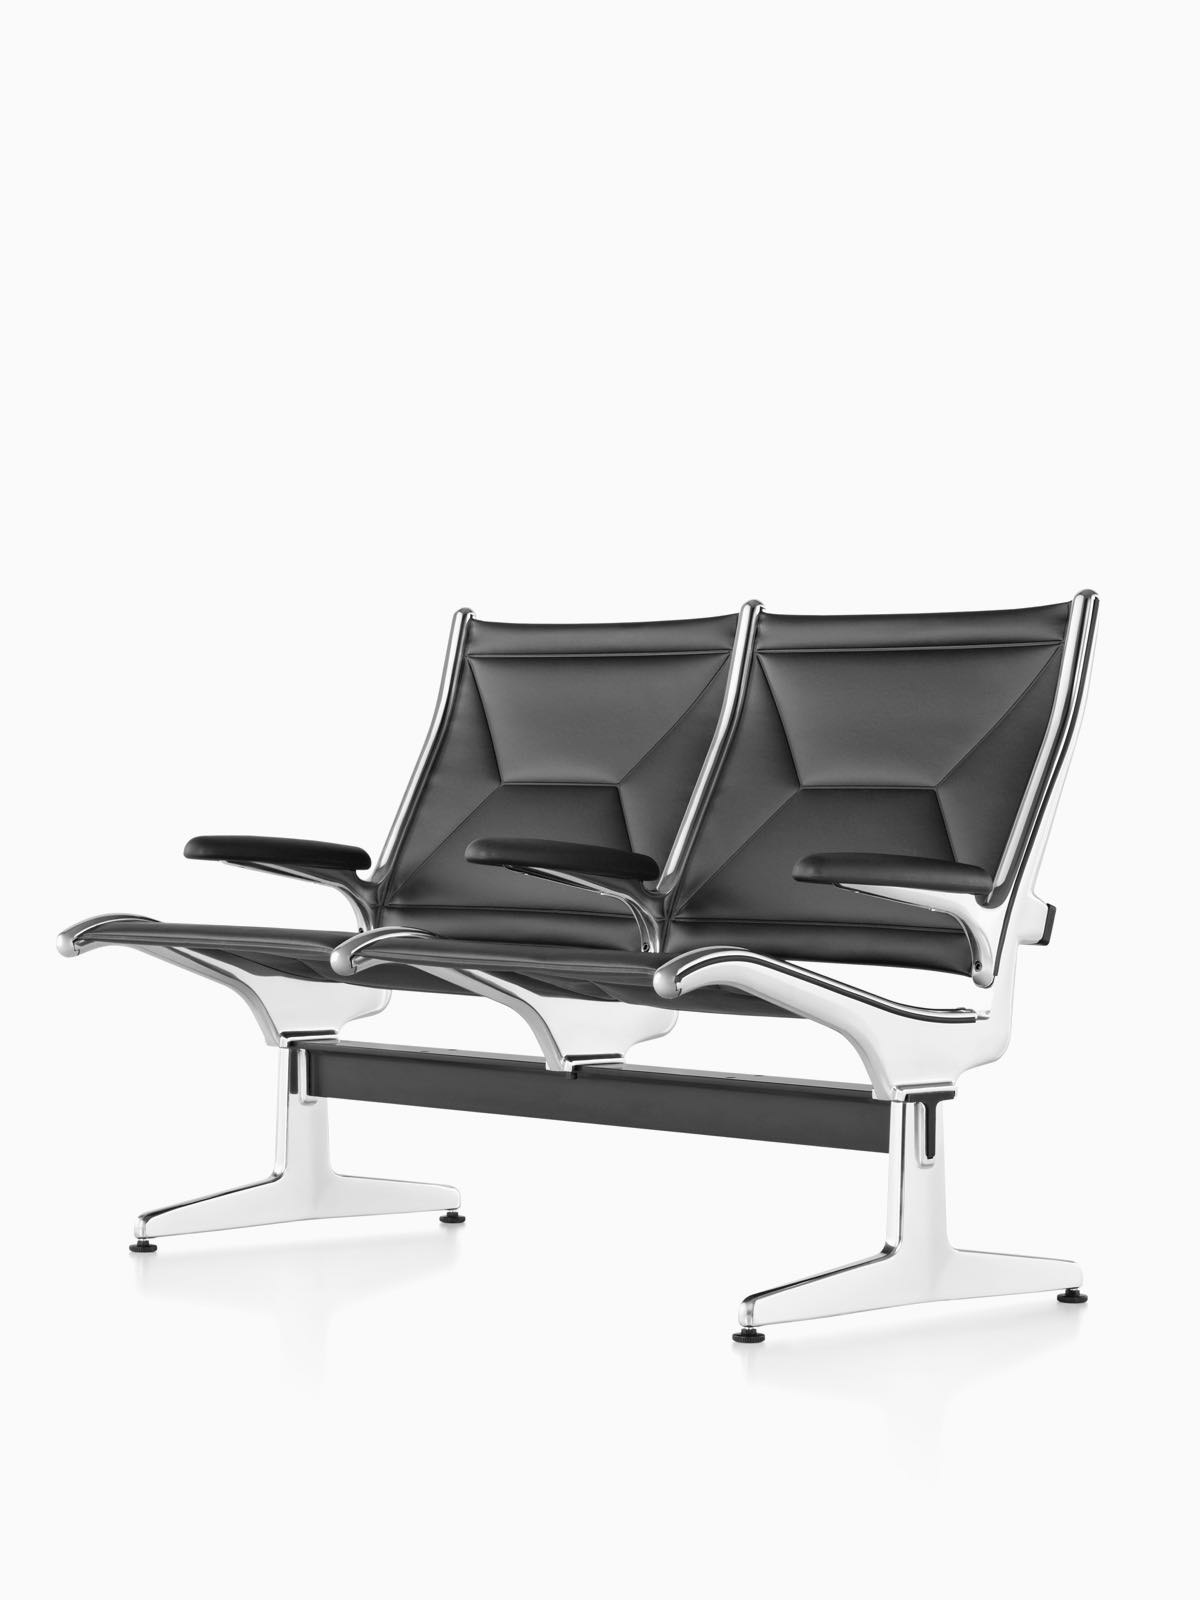 Eames Tandem Sling Seating